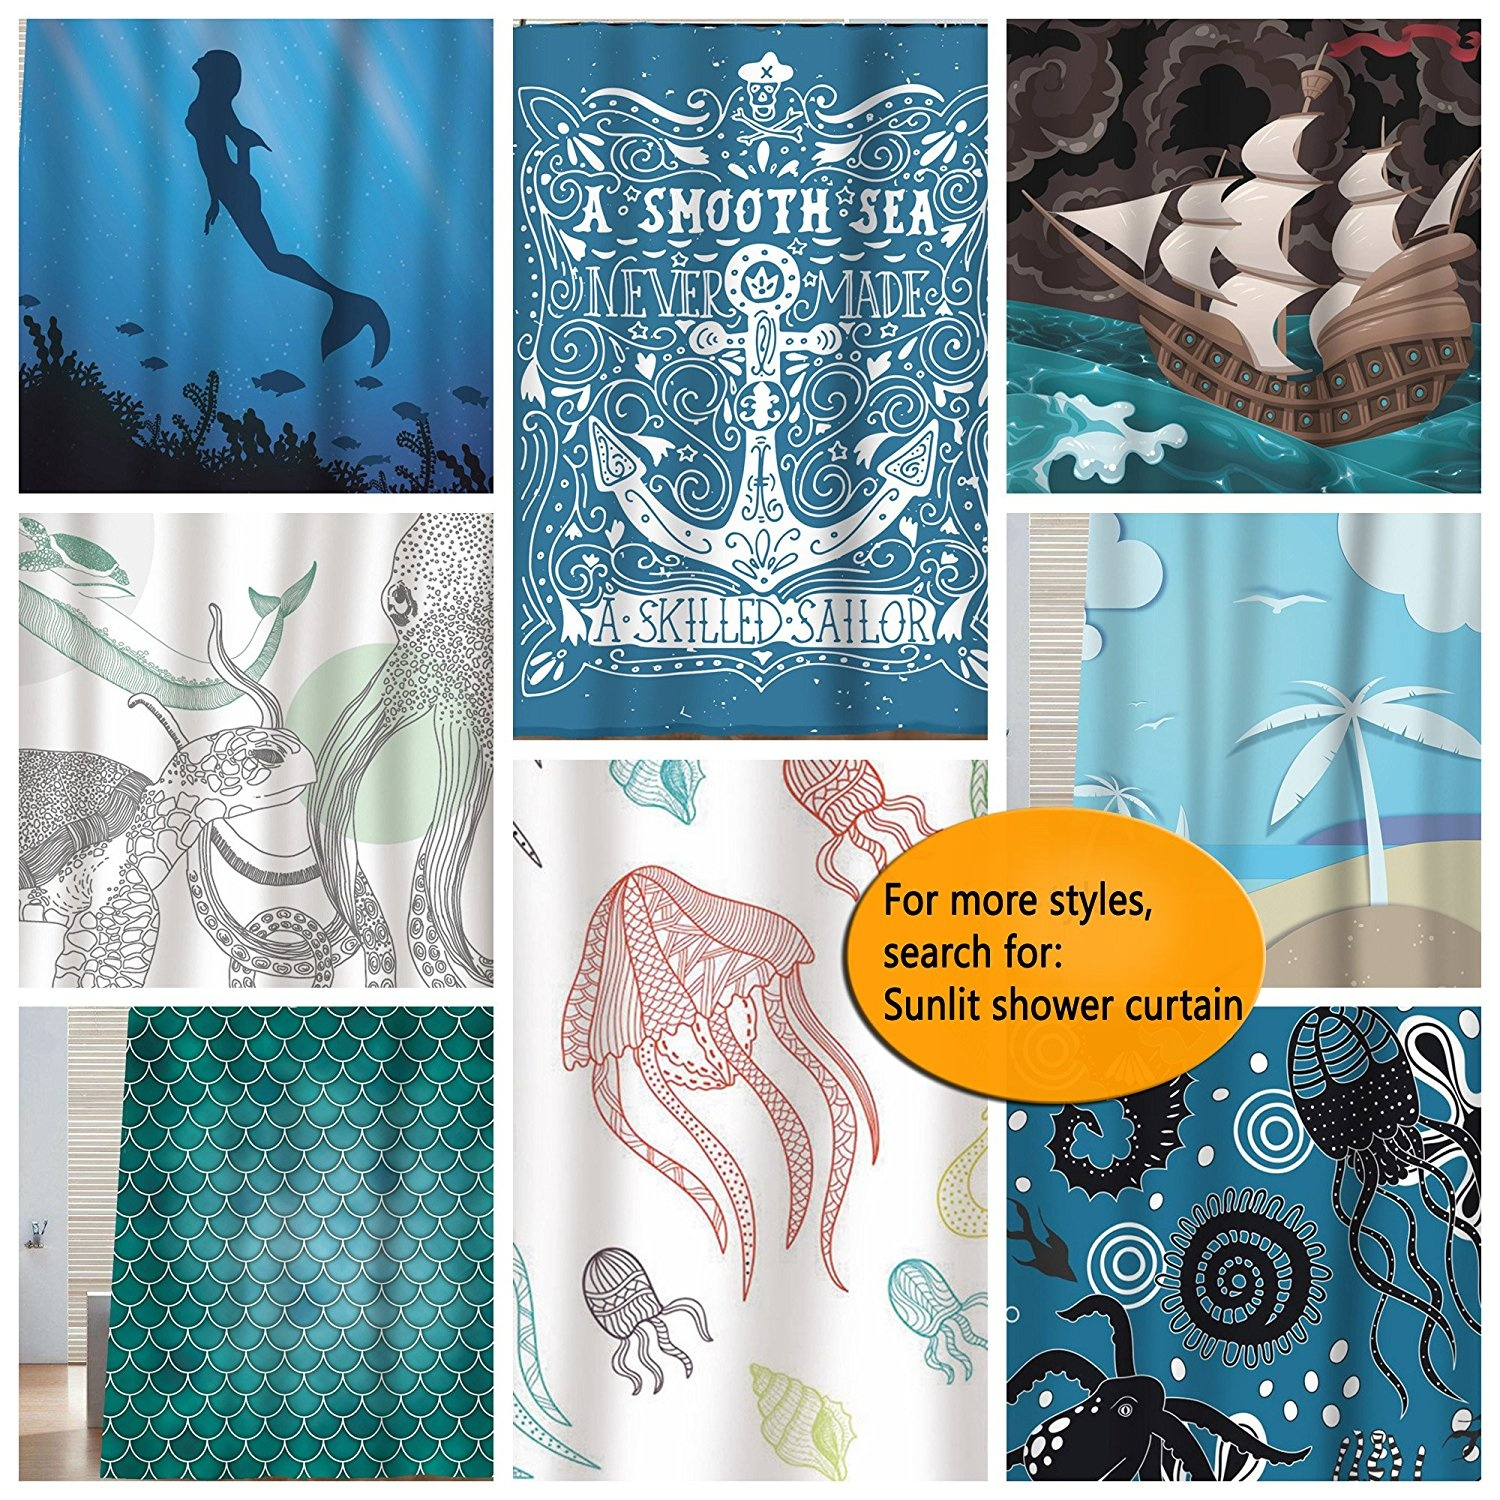 Sunlit Designer Ocean Animals White Fabric Shower Curtain With Sea Turtle Whale Octopus Tentacles Marine Life Scenery Abstract Sketch Art Blue Grey